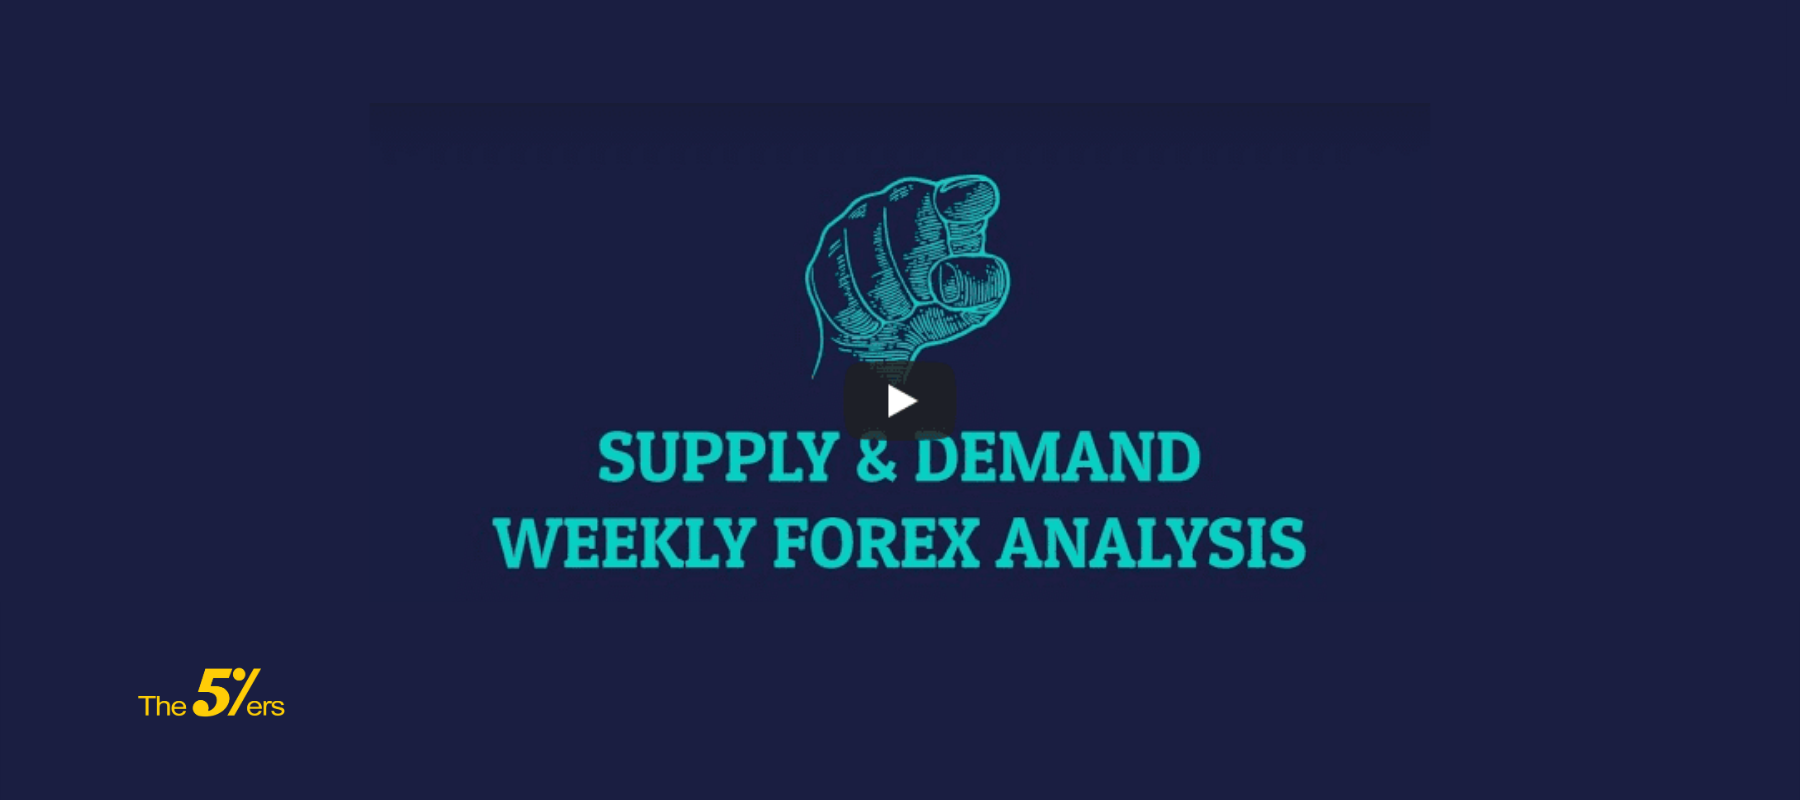 Weekly Forex Analysis - Supply & Demand Forex strategy